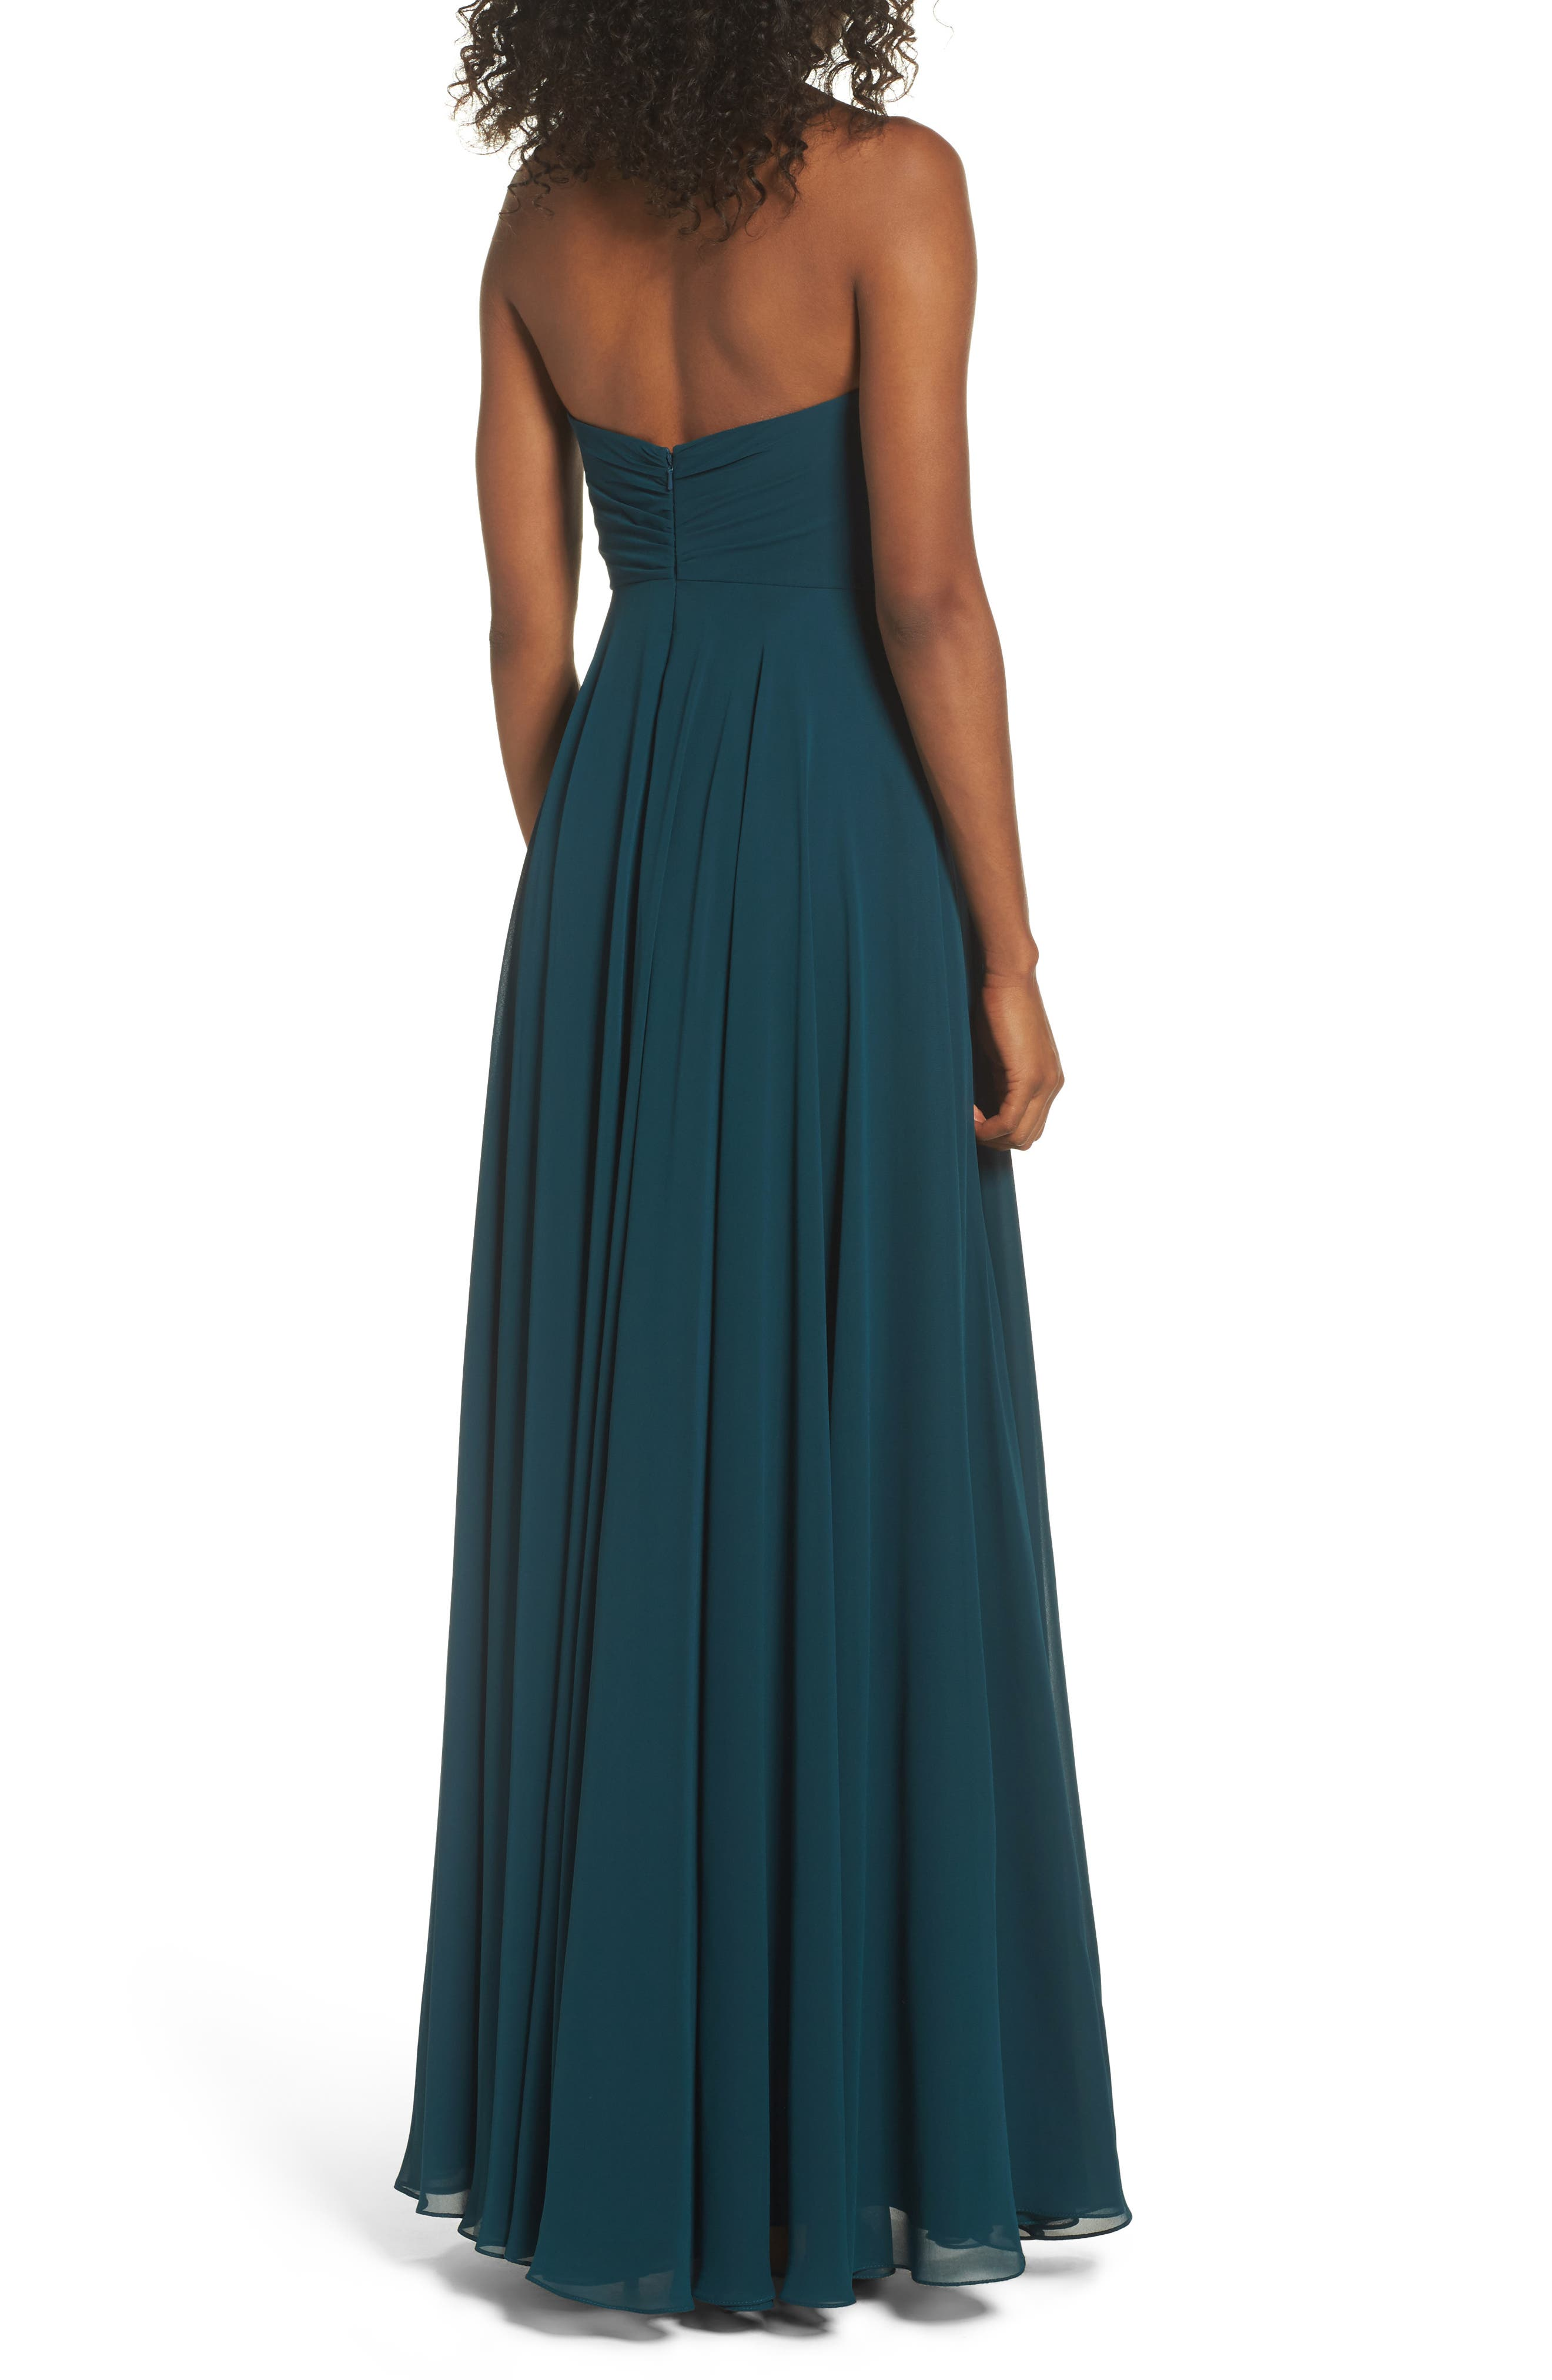 JENNY YOO,                             Adeline Strapless Chiffon Gown,                             Alternate thumbnail 2, color,                             444